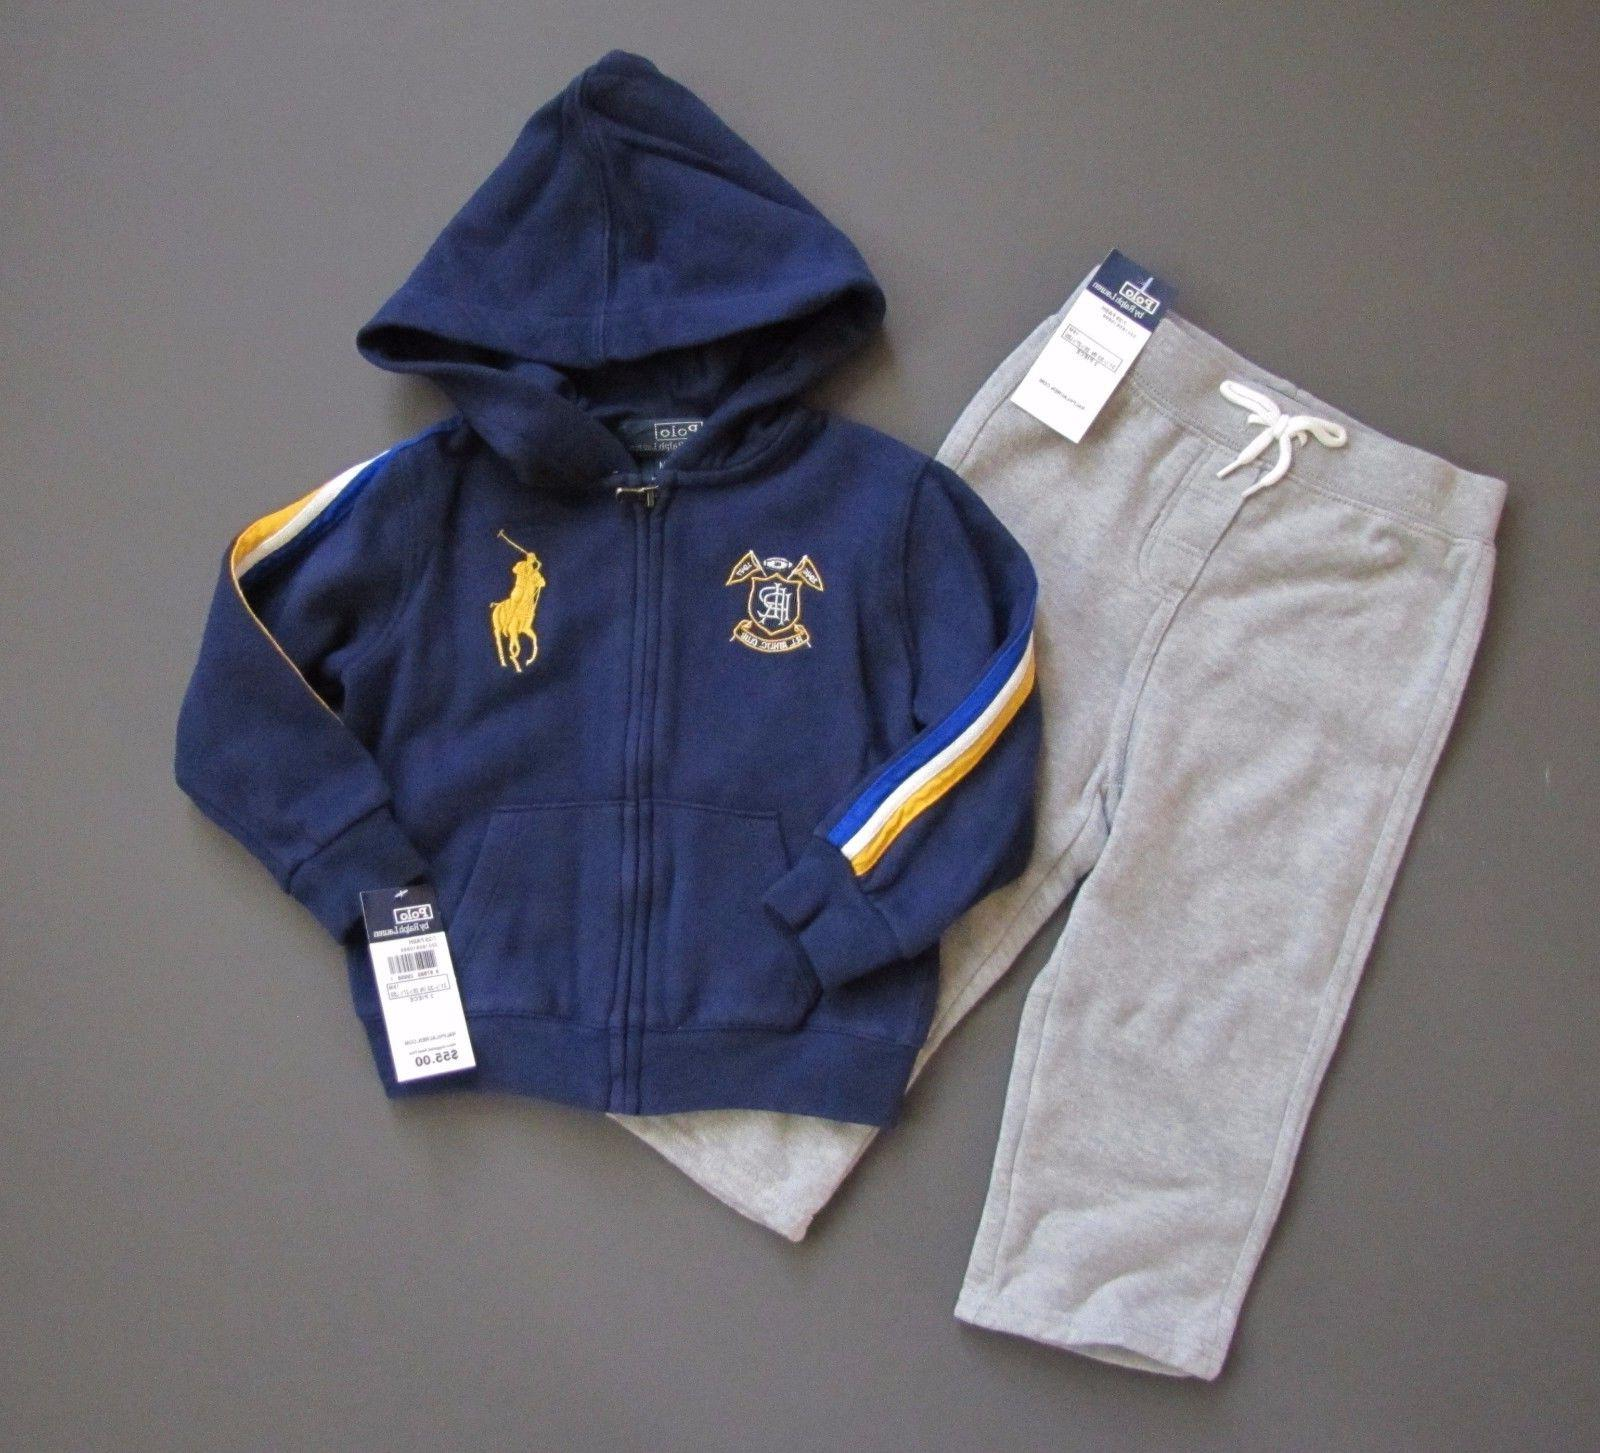 polo big pony track suit outfit baby